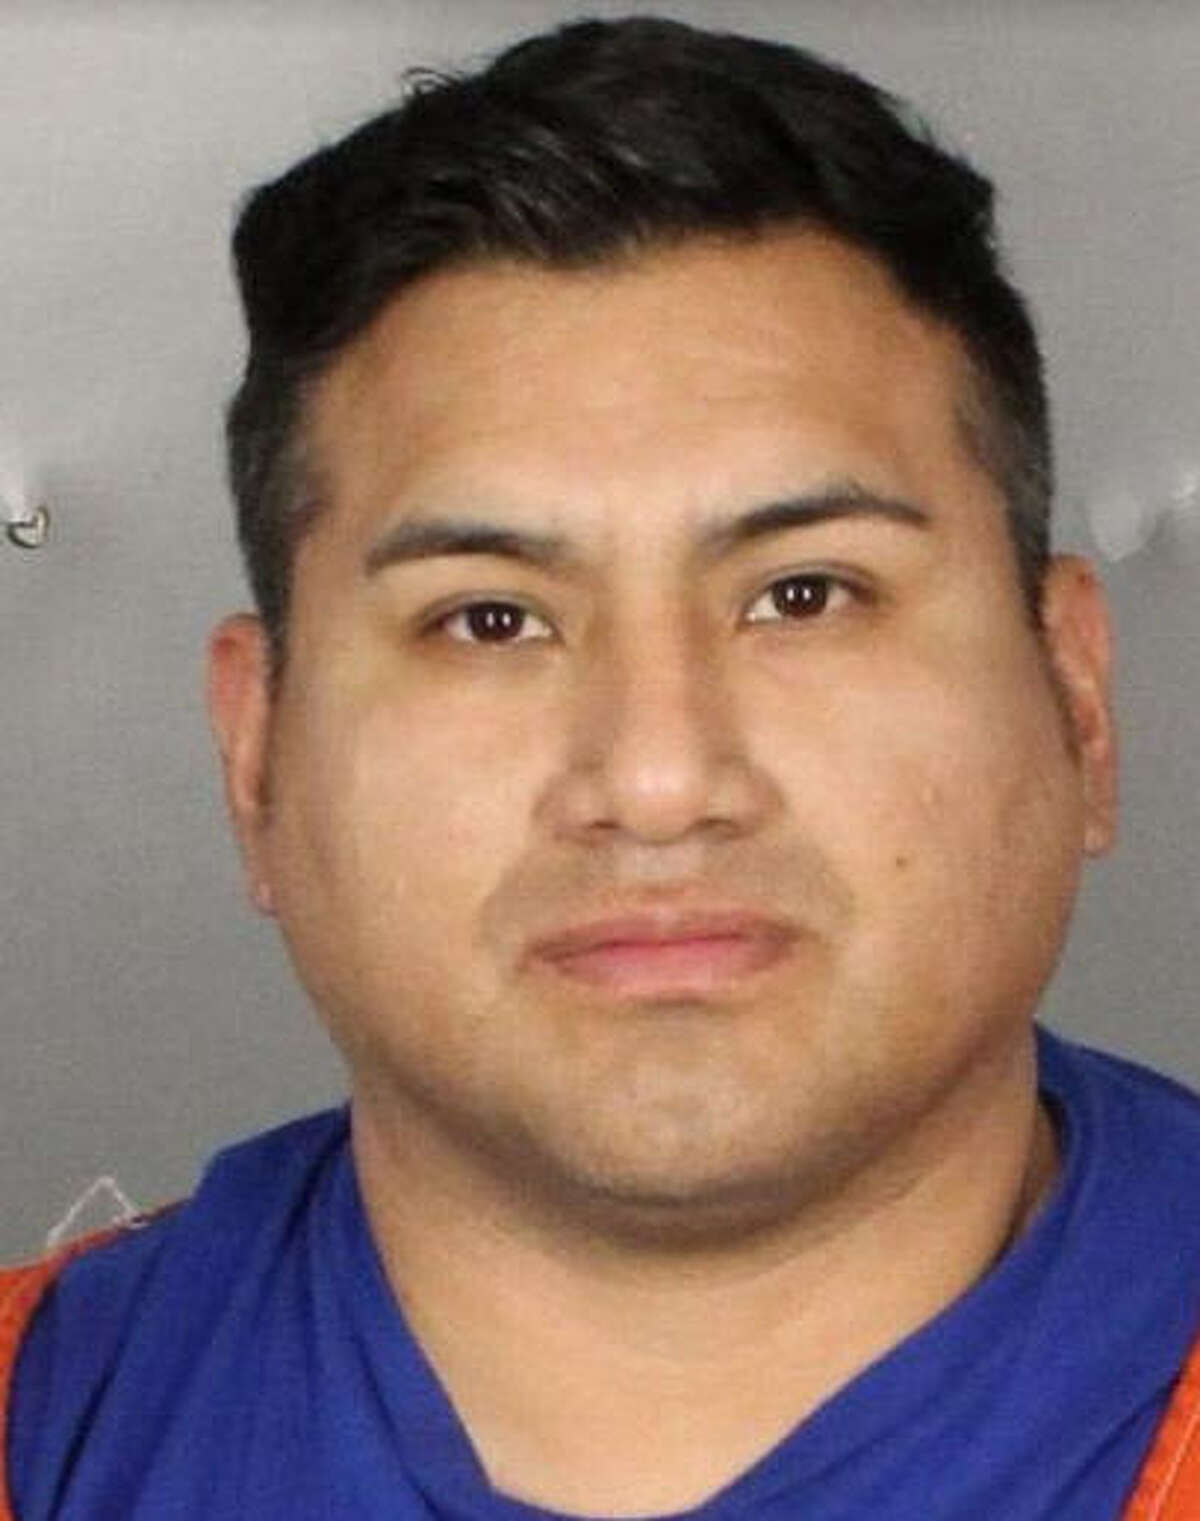 Willy Rafael Lopez, 35, was arrested by McLennan County Sheriff's Office deputies Monday and charged with misdemeanor prostitution.